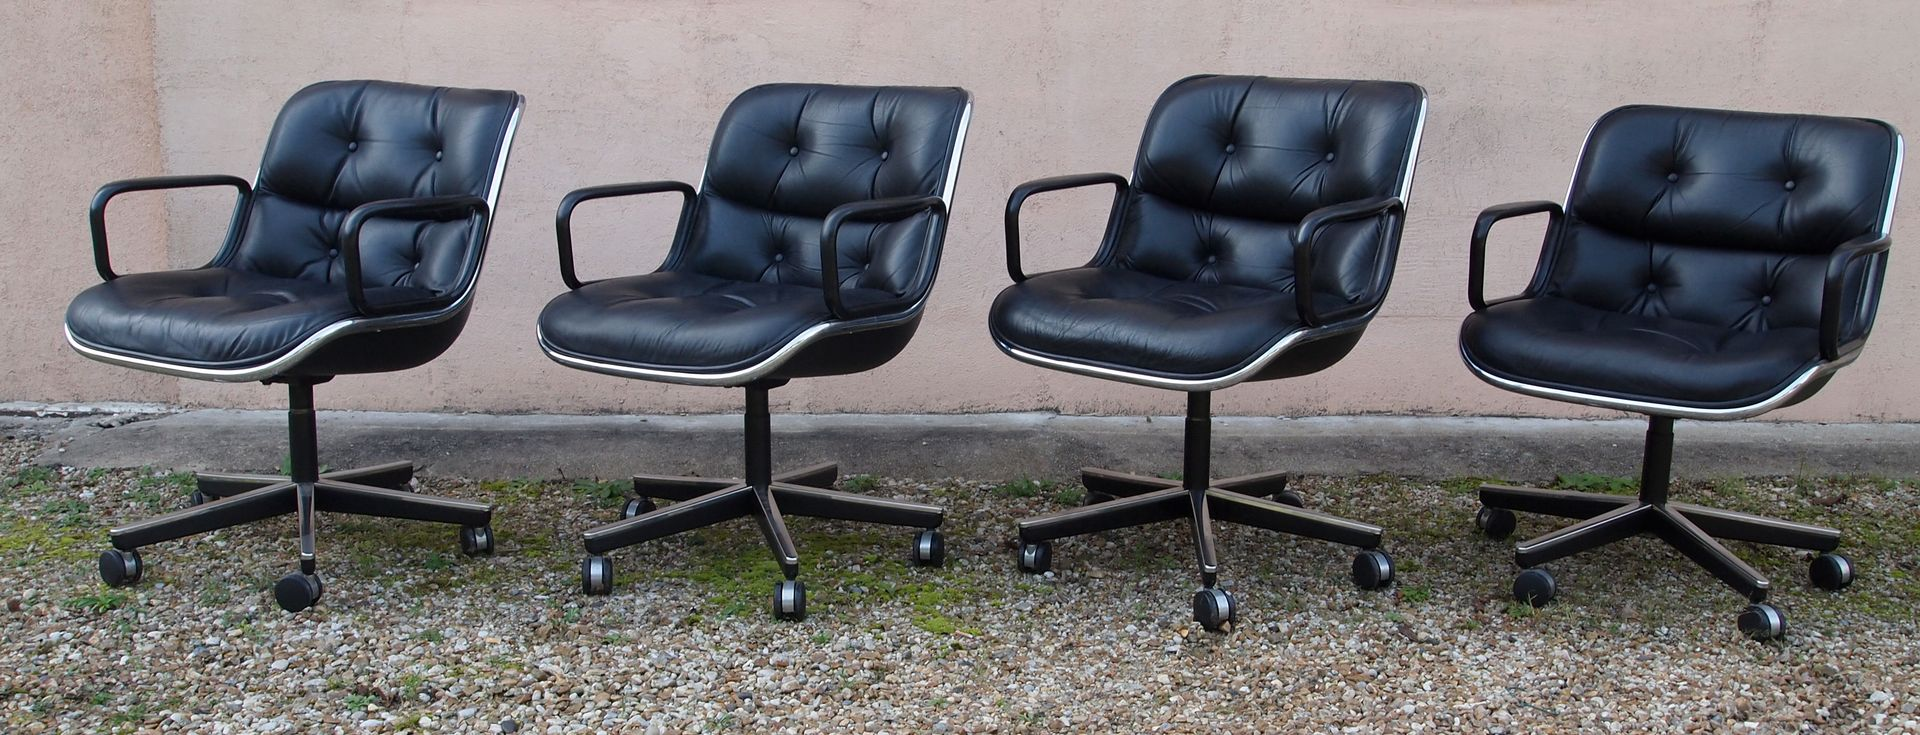 Vintage chair by charles pollock for knoll inc knoll international for sale at pamono - Knoll inc chairs ...